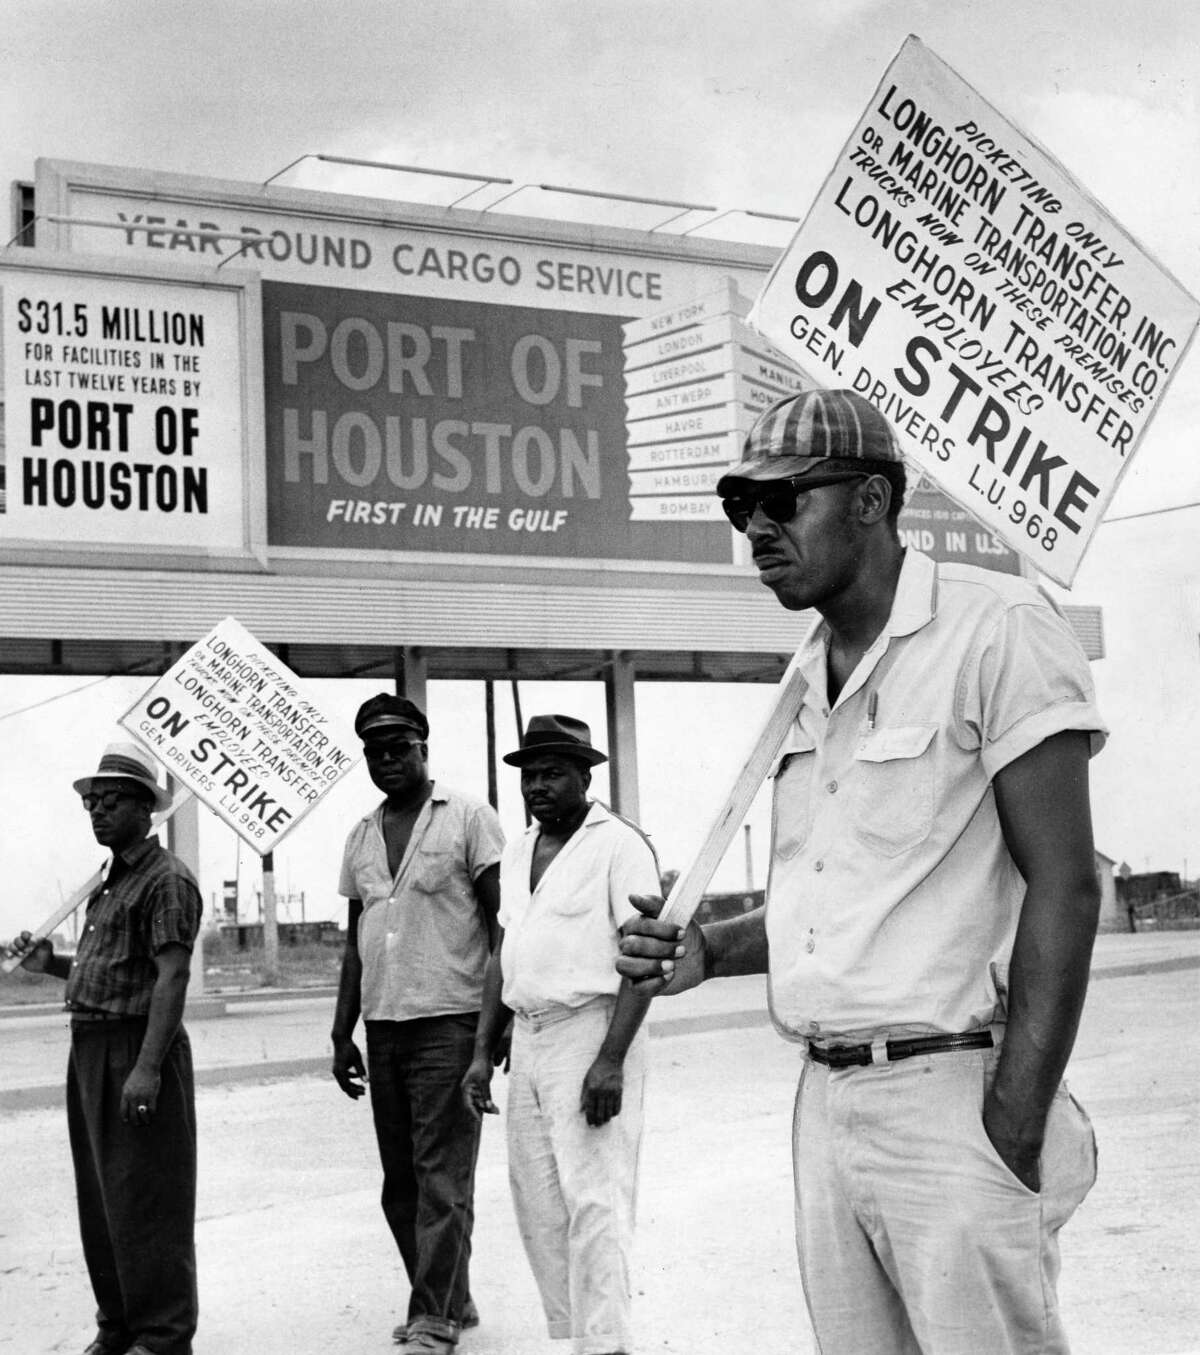 Teamster pickets who halted longshoremen again in port. From left, T.R. Fleming, C. Williams, Andrew Harris, and Dan Shannon walk the picket line during a longshoremen strike at the Port of Houston in 1963.